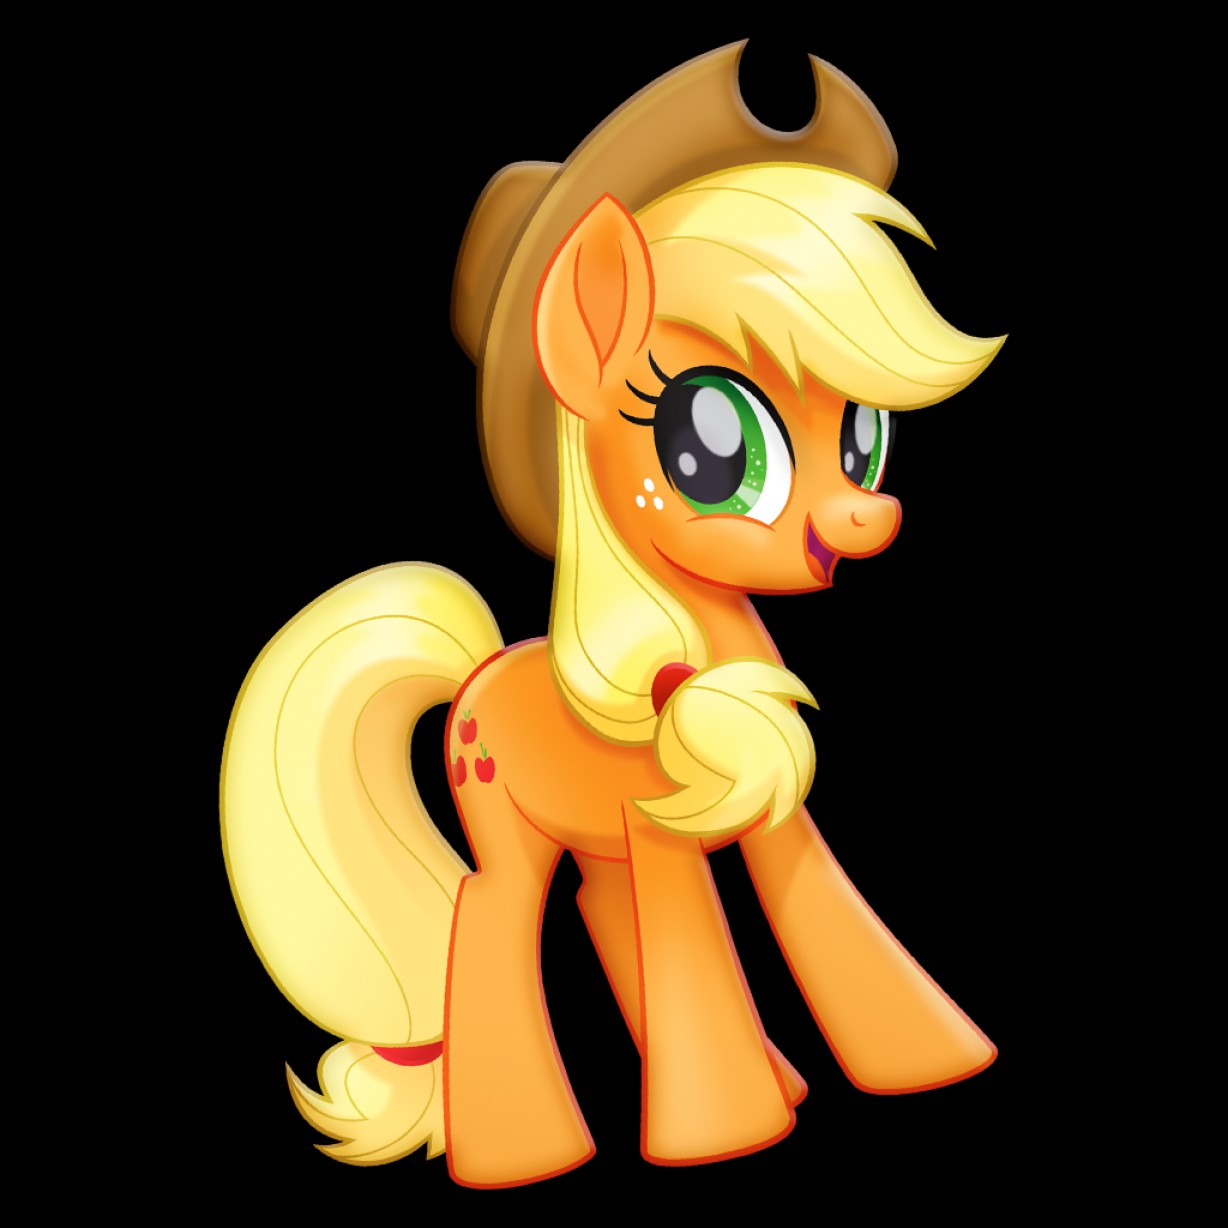 Mayor MLP Vector: High Quality Official Vectors For Mlp